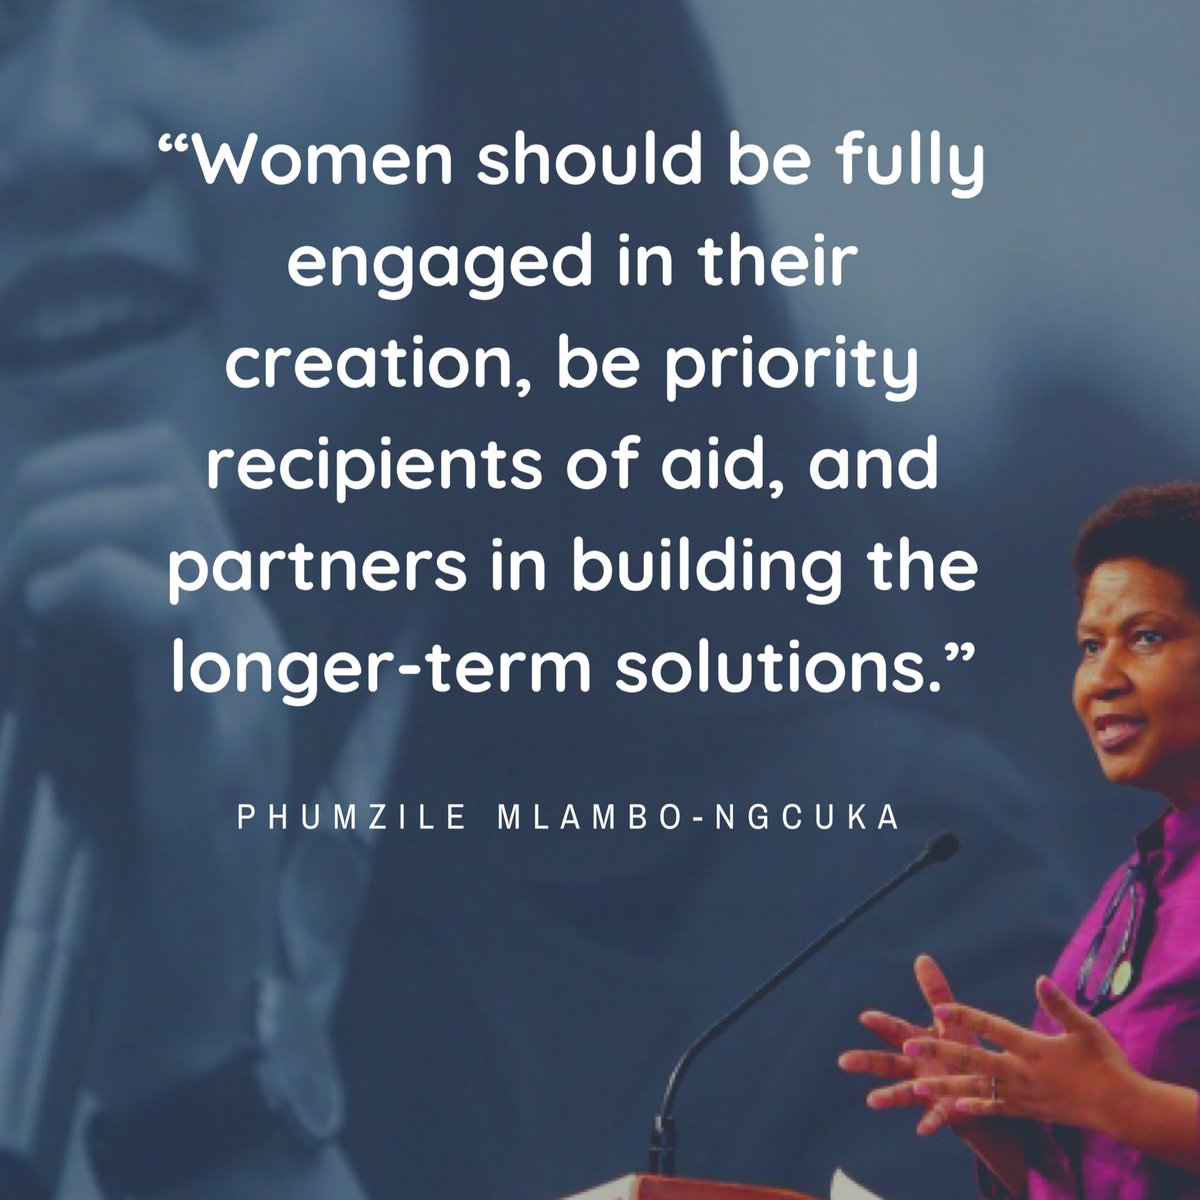 UN Women Executive Director @phumzileunwomen on fighting for women's rights & protection amidst Covid-19 pandemic #womenempowerment #strongwomen #leadership #inspiration #equalrights #healthcareworkers #strongertogether #politics #femalemodel pic.twitter.com/OFMNKhSXqG